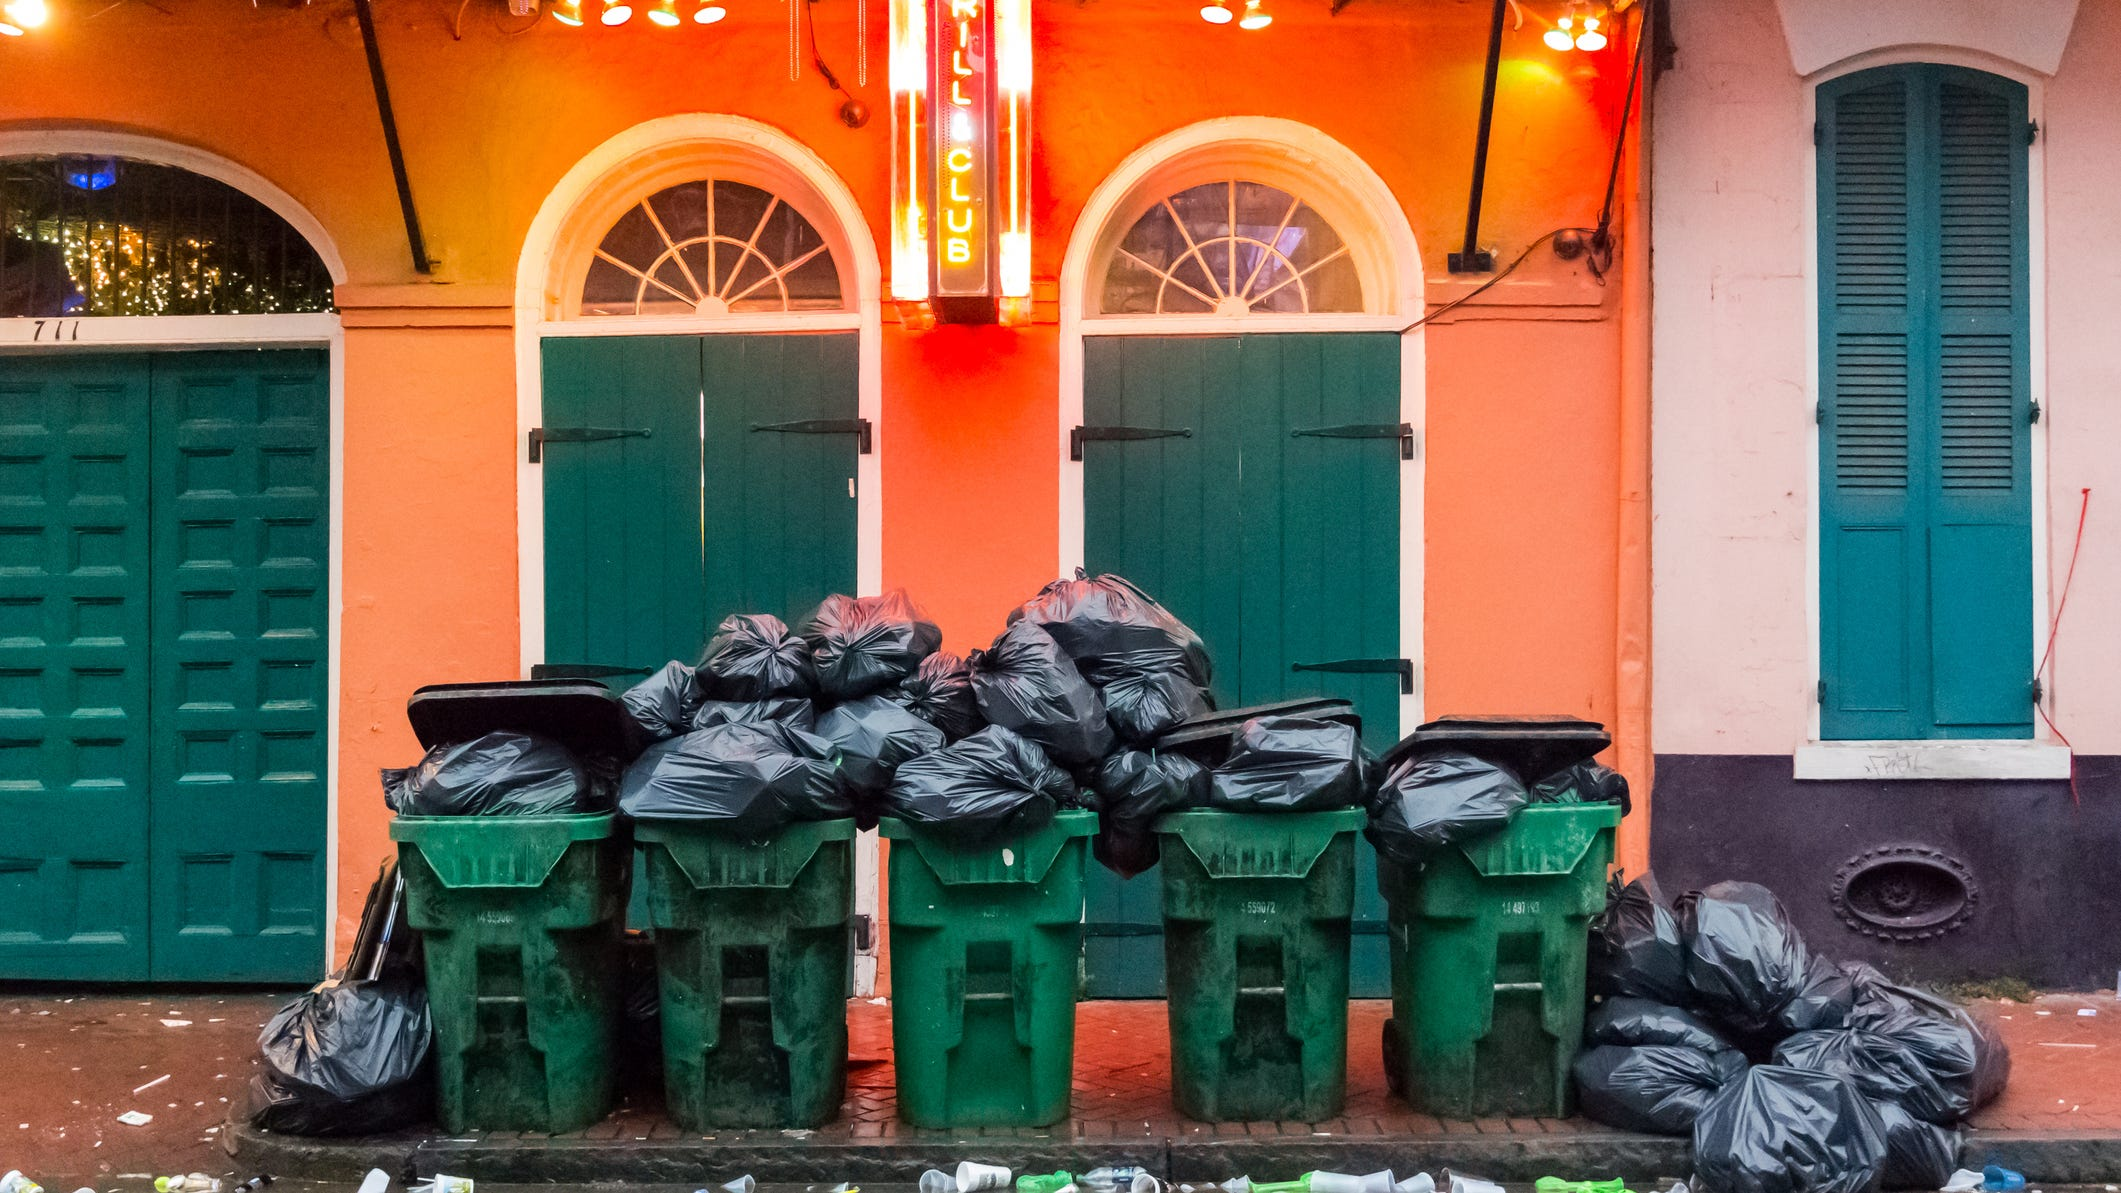 Hang in there! Trash collection is ramping up says parish leaders